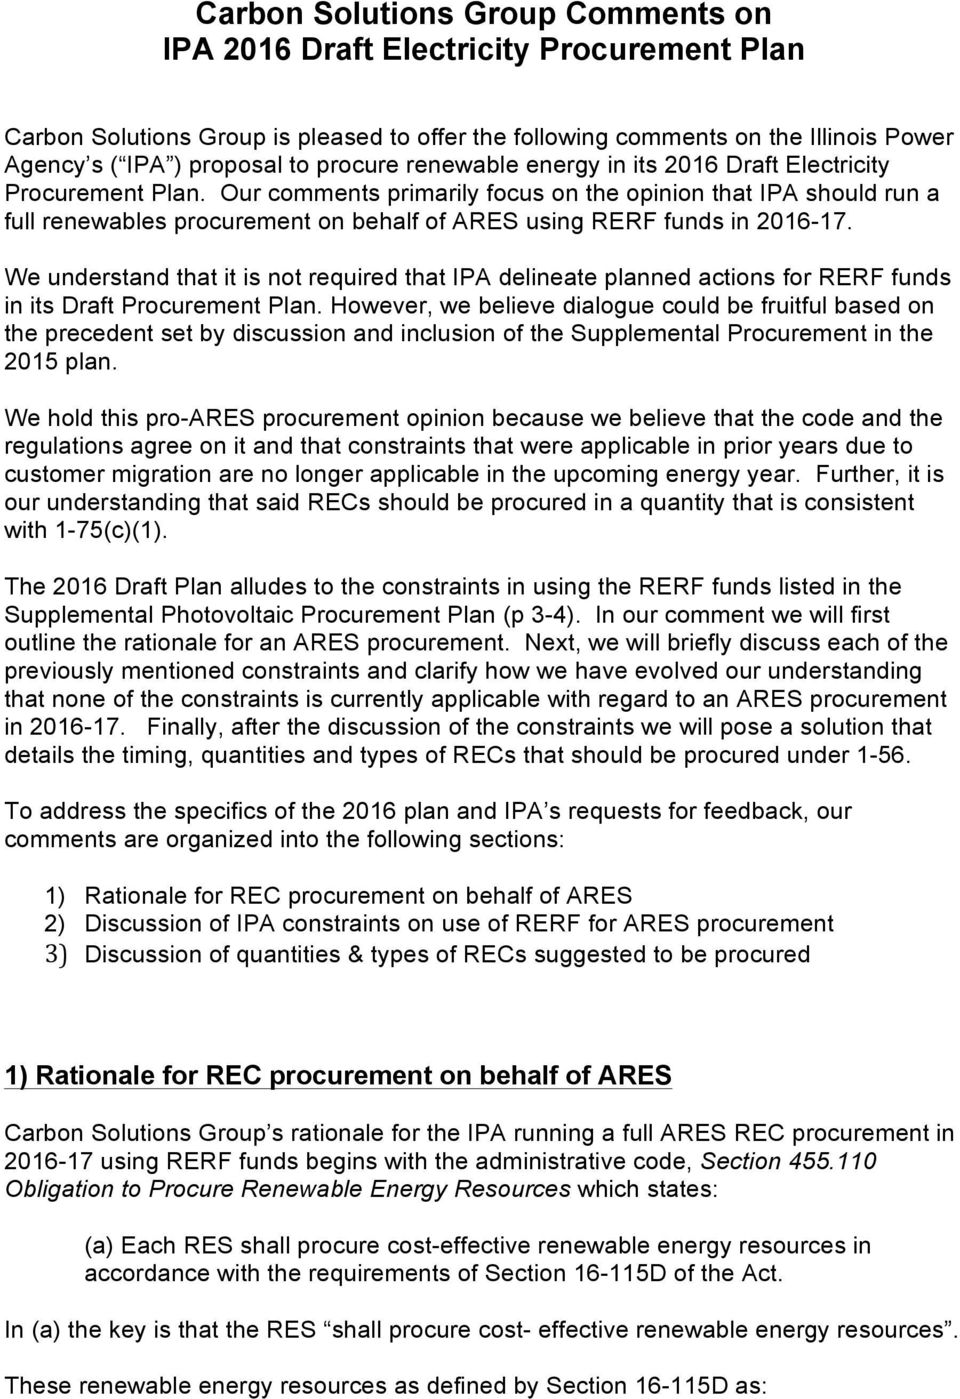 Our comments primarily focus on the opinion that IPA should run a full renewables procurement on behalf of ARES using RERF funds in 2016-17.